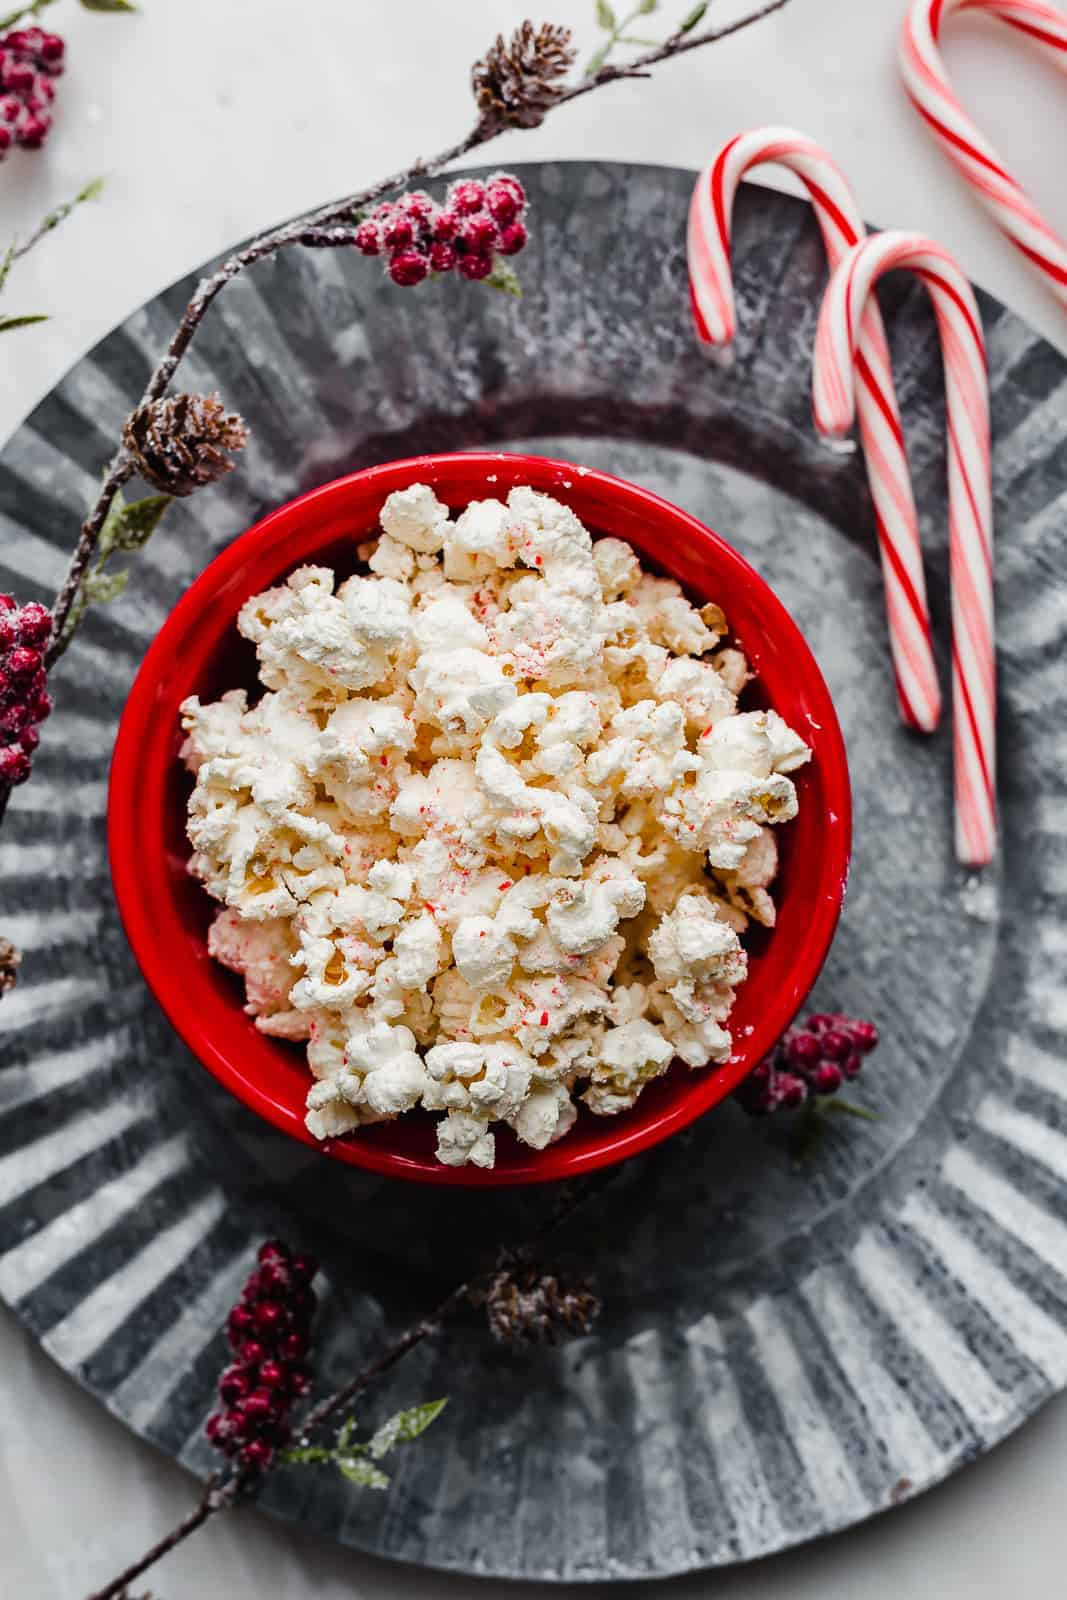 Popcorn in a red bowl against a metal gray background.